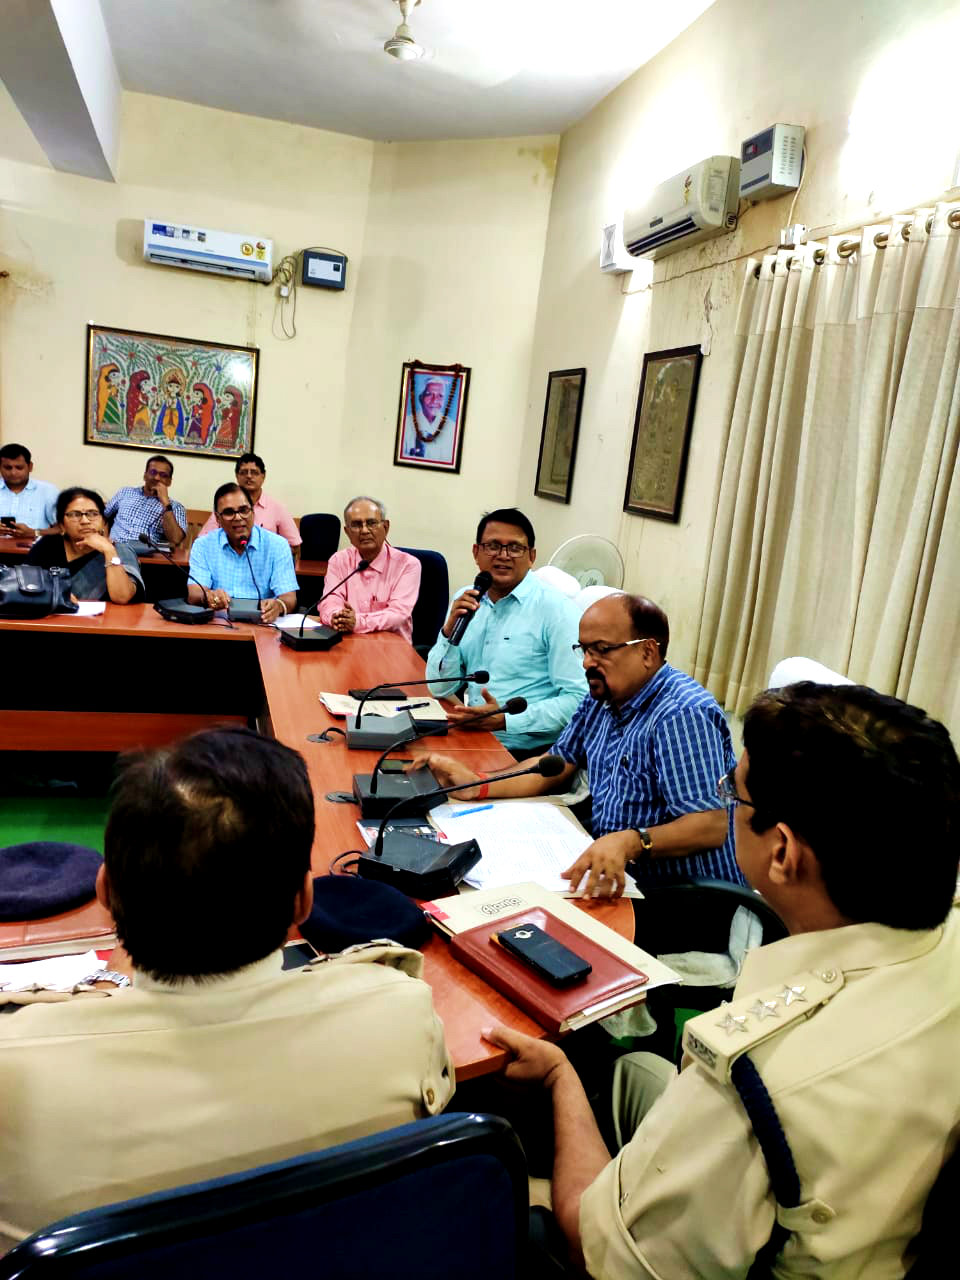 Dr.B.N.Yadav Madhepuri along with ADM, SDM, ASP.....Dr.A.K.Mandal, Dr.Shanti Yadav , CO, EO & other officers discussing about the celebration of the 15th August as well as the celebration of Rajkiya Samaroh of BP Mandal Jayanti.